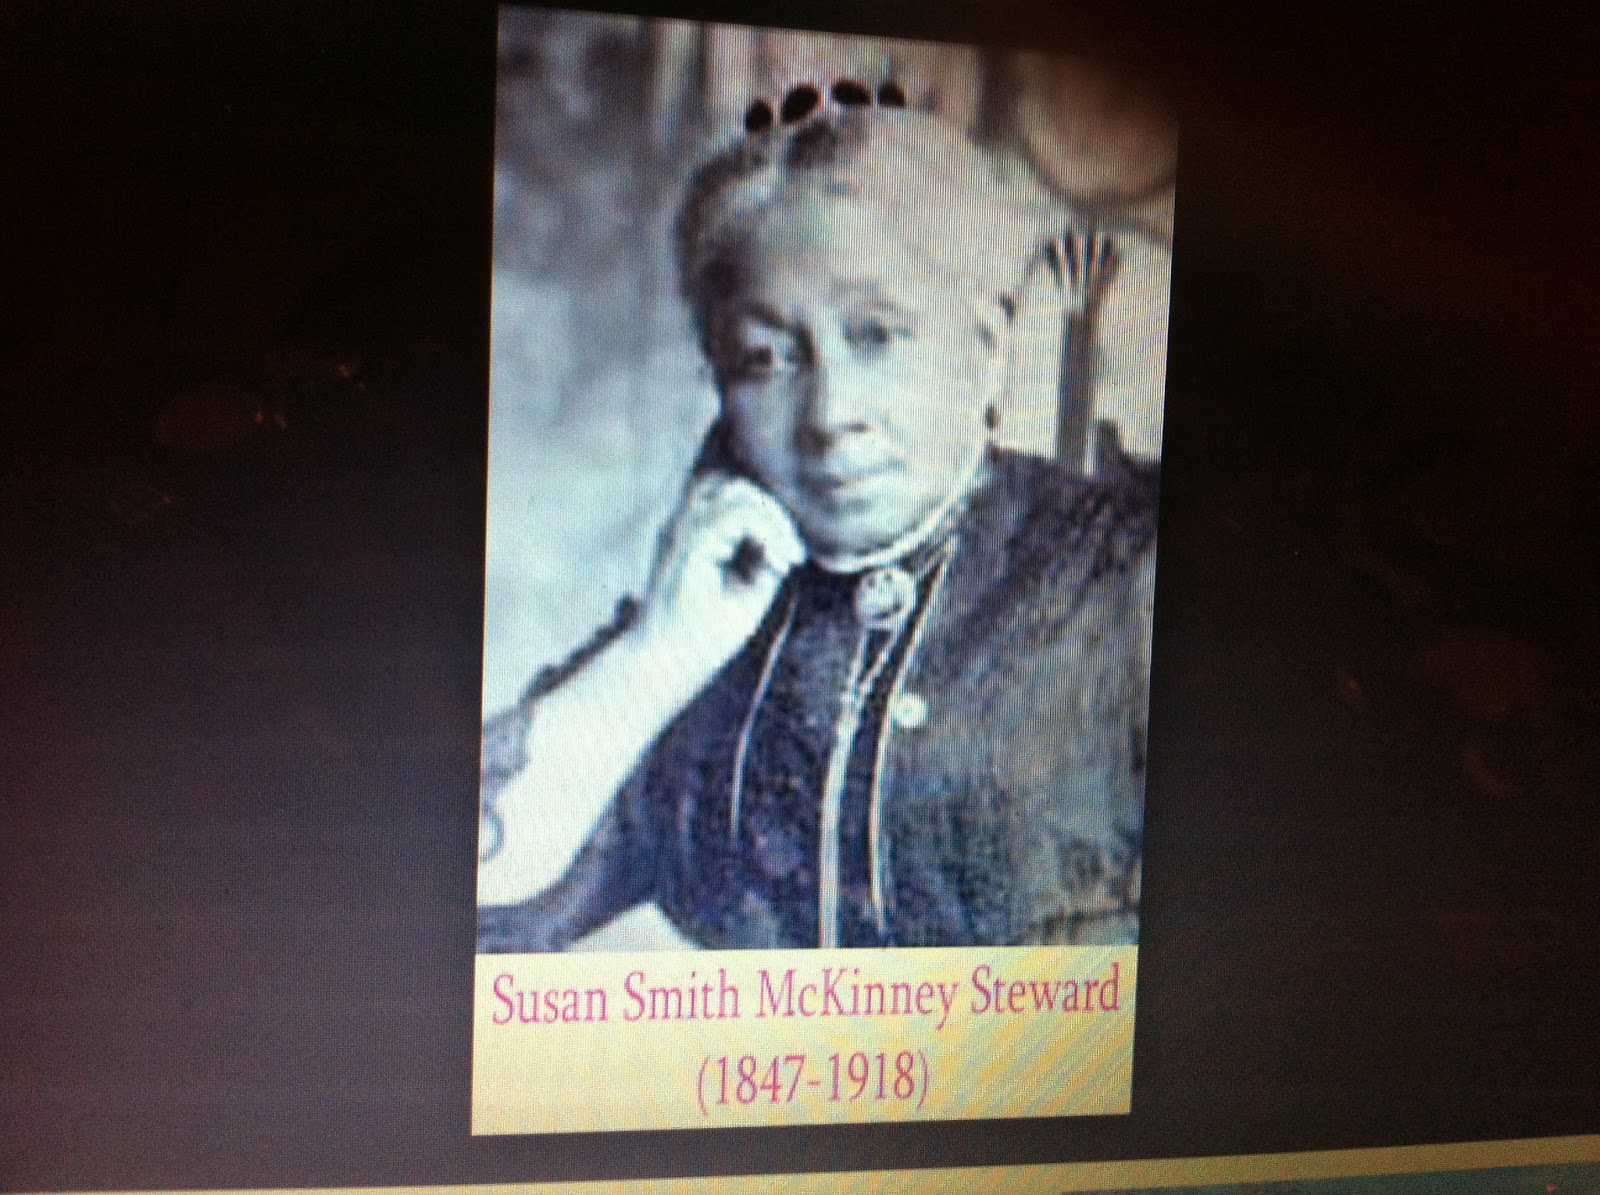 susan mckinney steward an african american physician Drsusan smith mckinney steward(1847-1918) was the first african american woman to earn a medical doctorate (md.